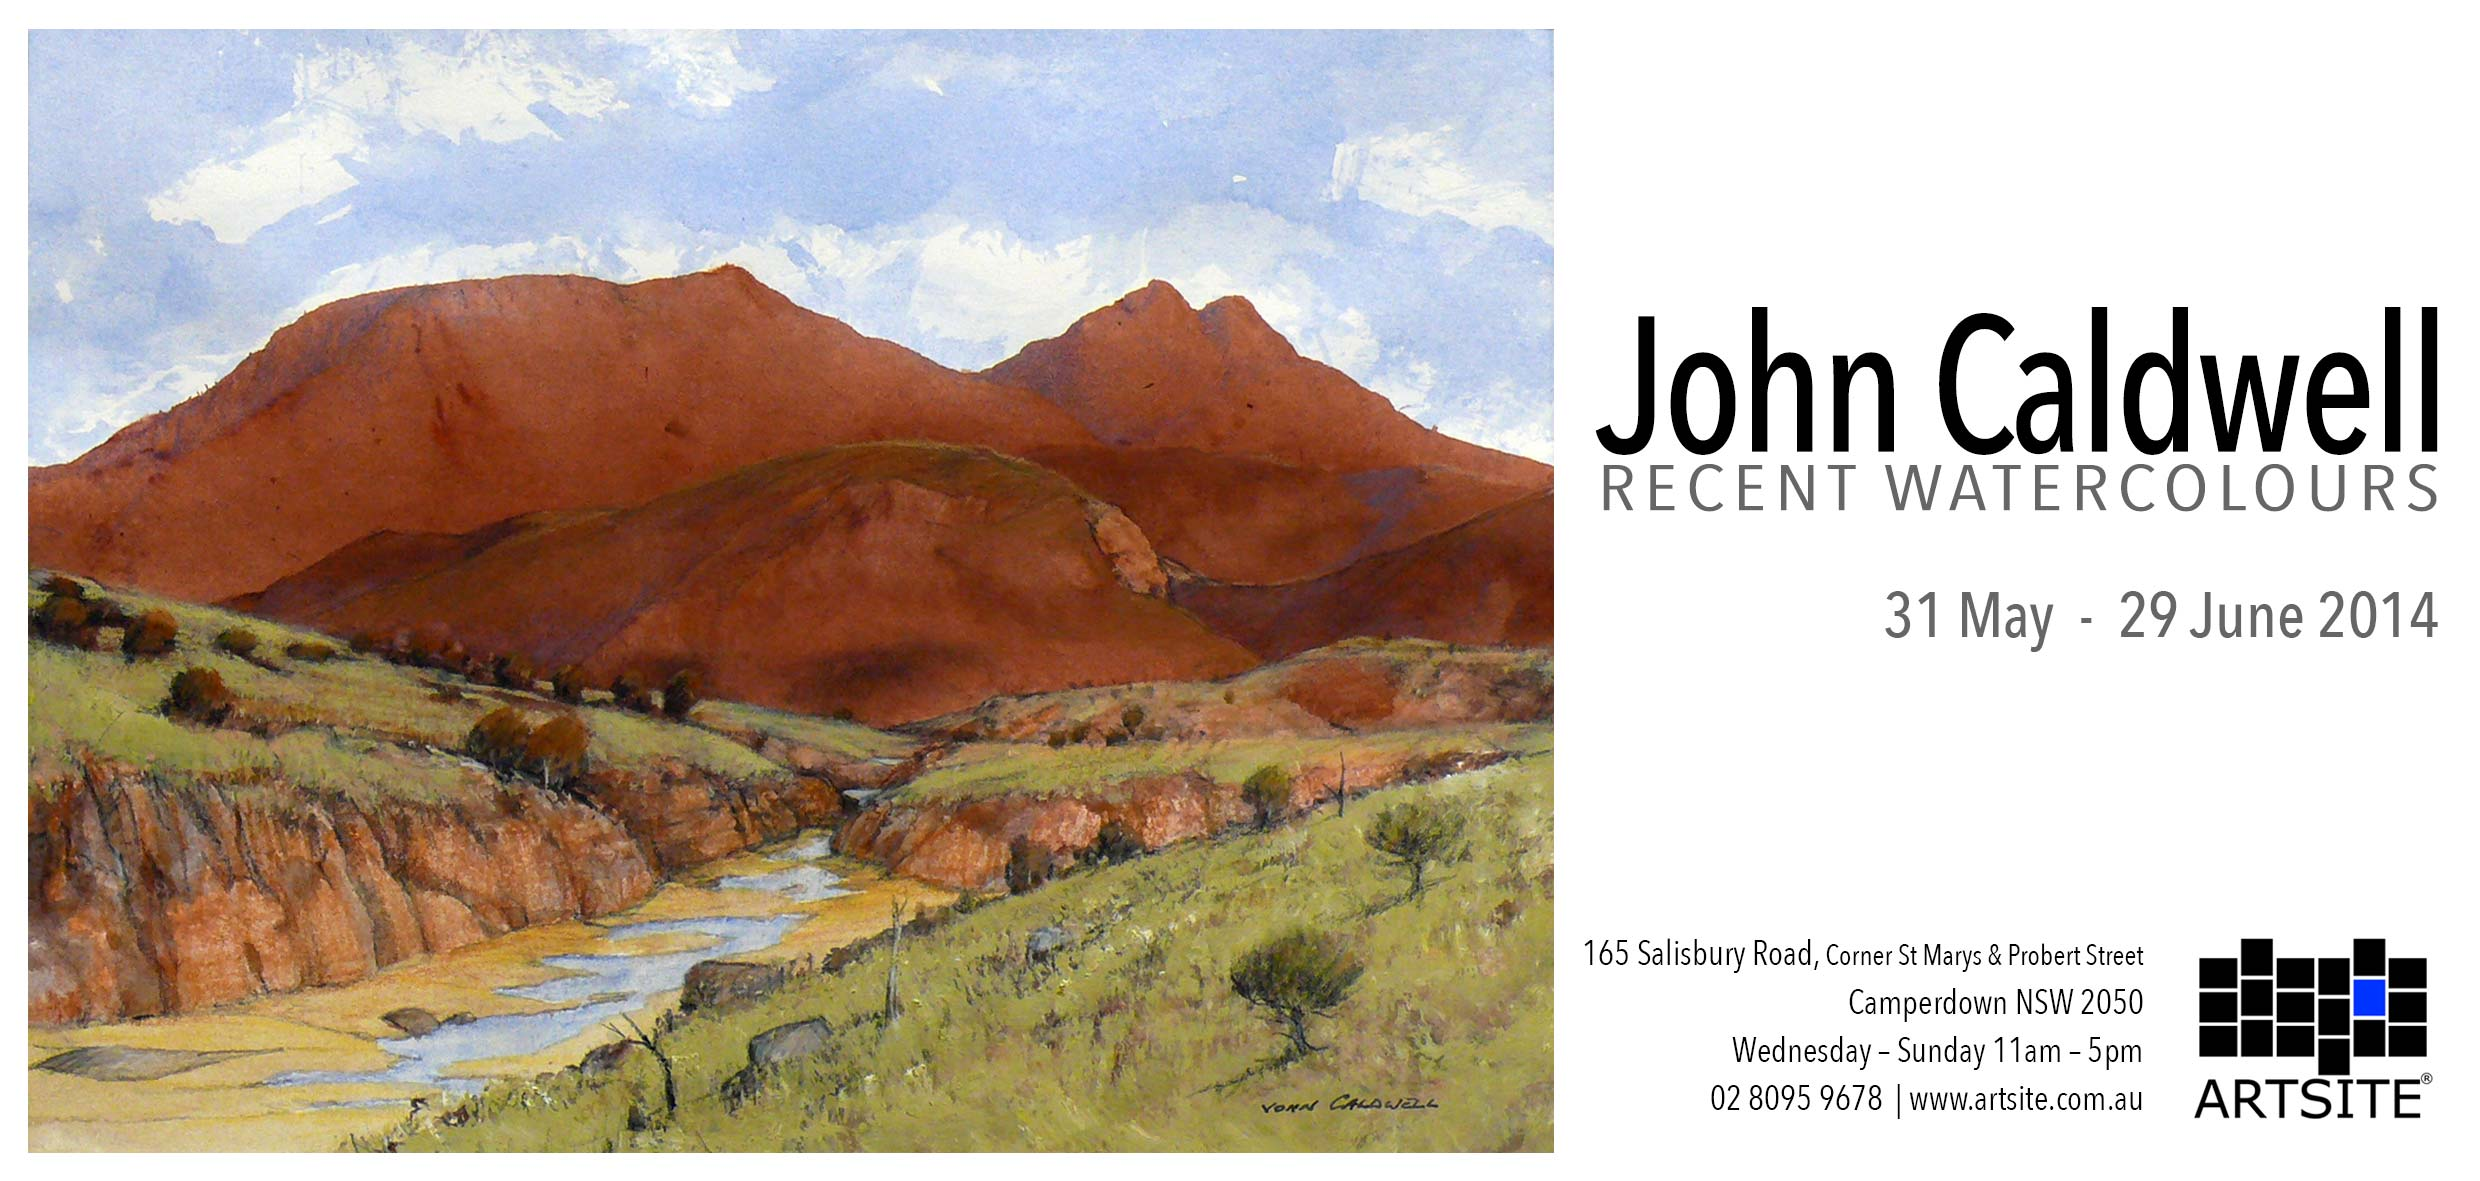 View Exhibition at Artsite Gallery. 31 May - 29 June 2014 John Caldwell - Recent Watercolours